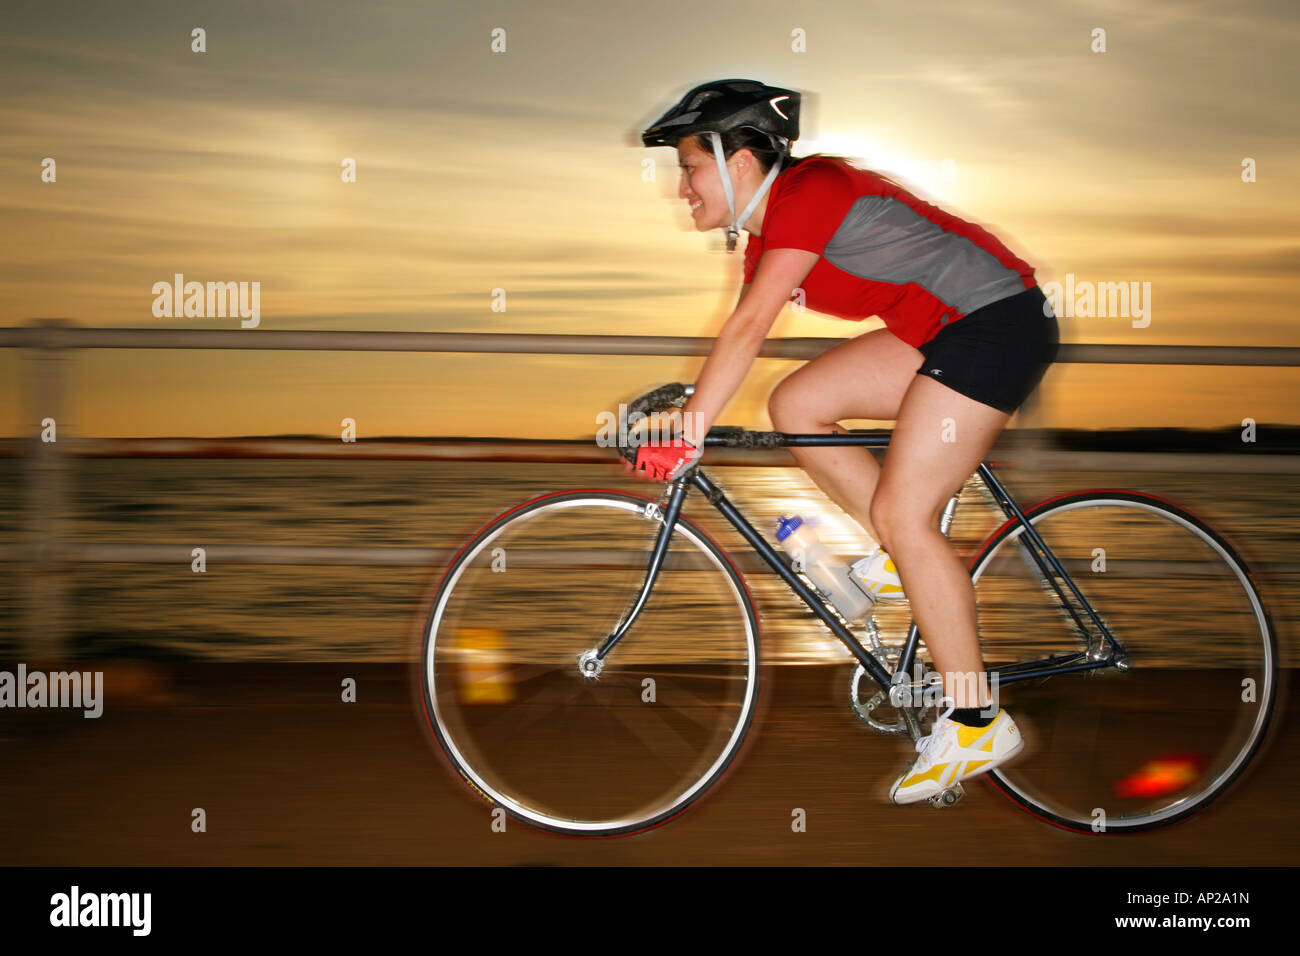 Young woman 26 years old ridding bicycle sunset, MR-09-30-2007 - Stock Image